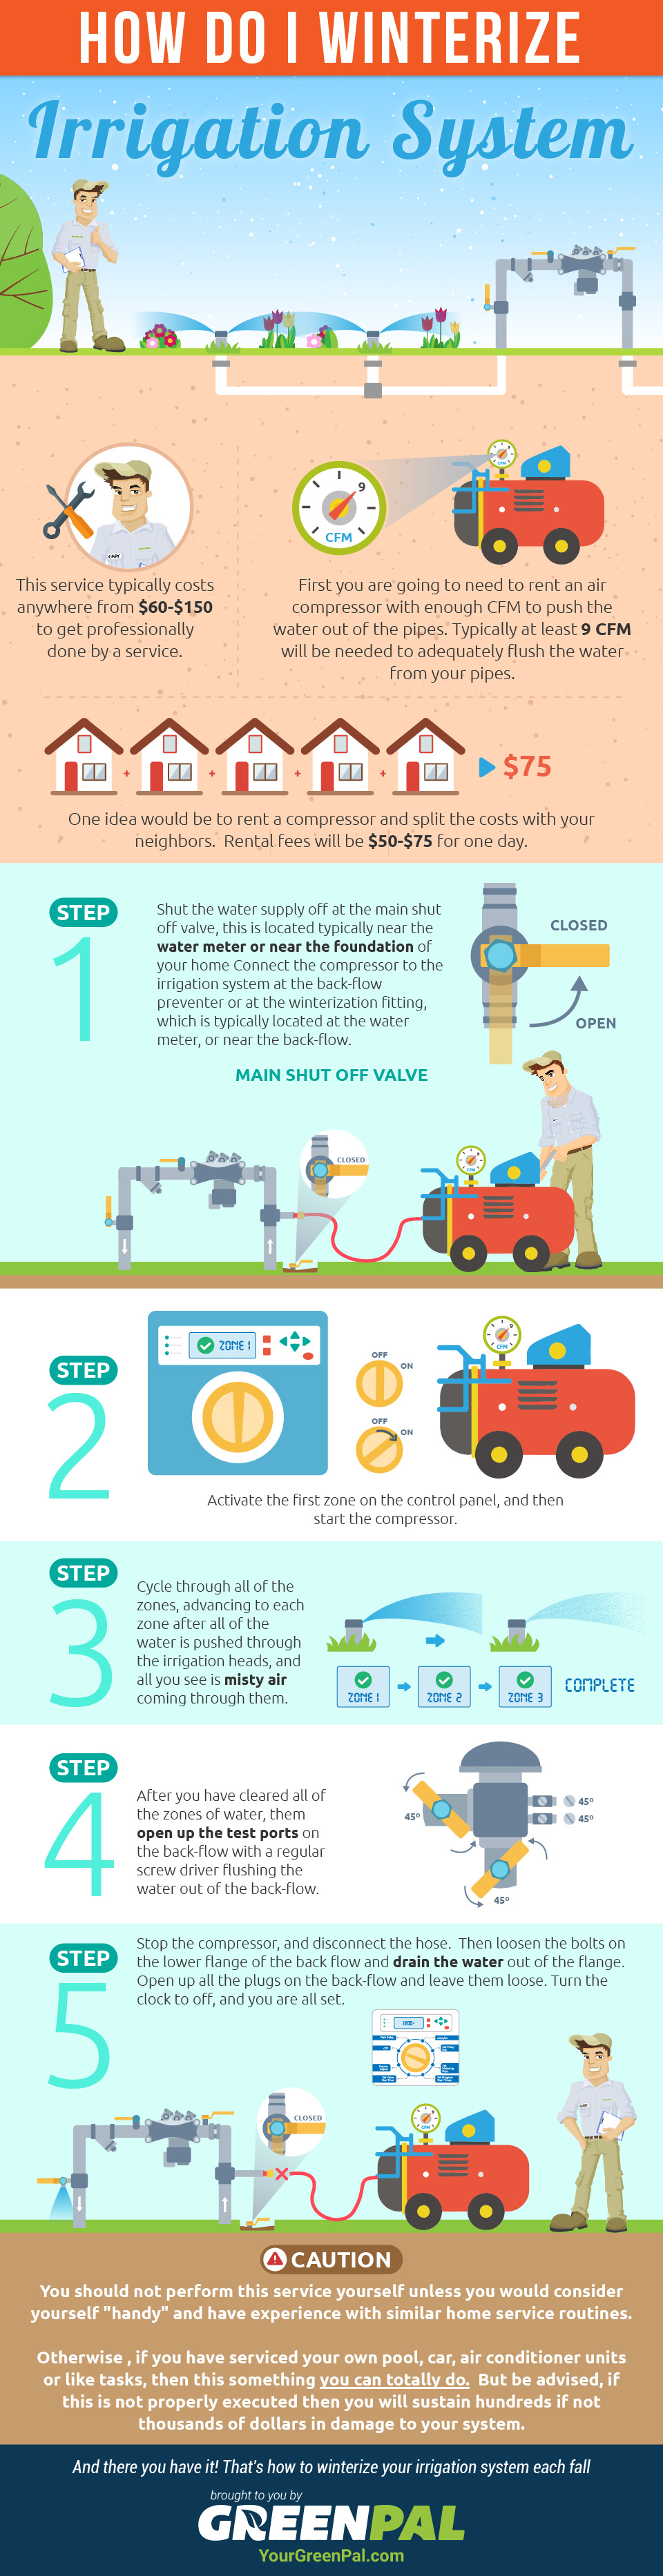 How to winterize your sprinkler system 01